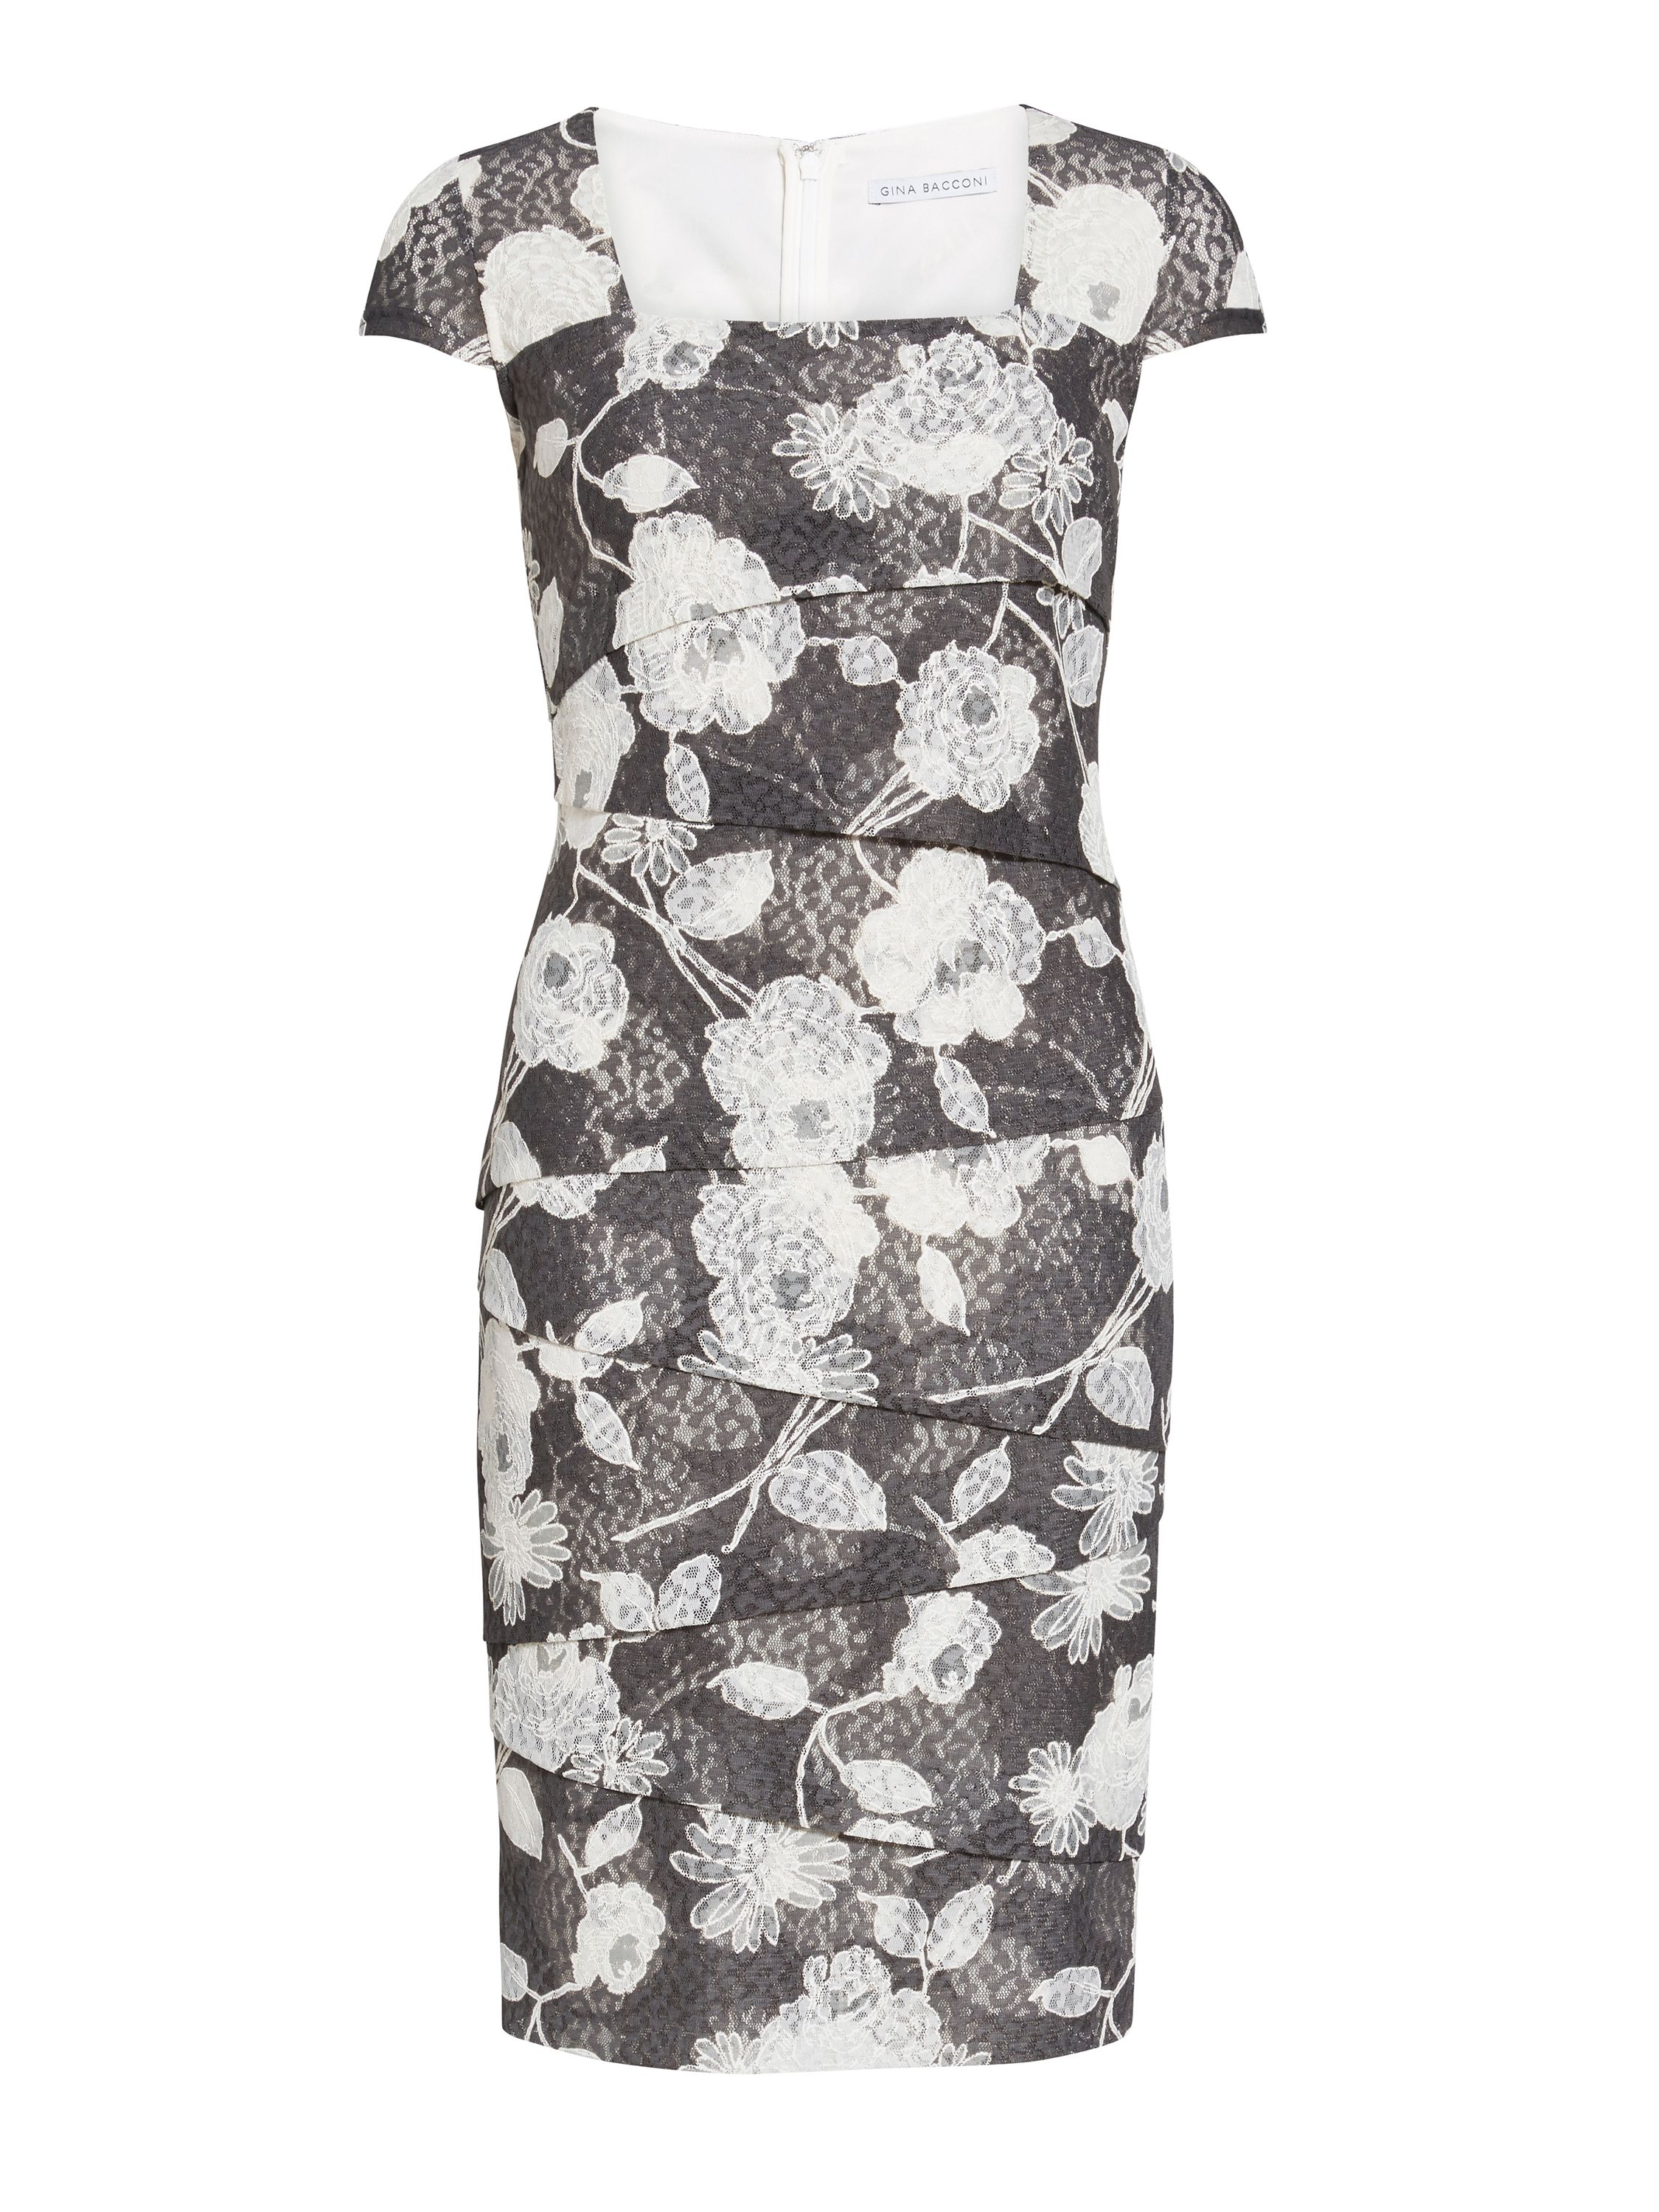 Gina Bacconi 3d floral printed lace layered dress, Grey